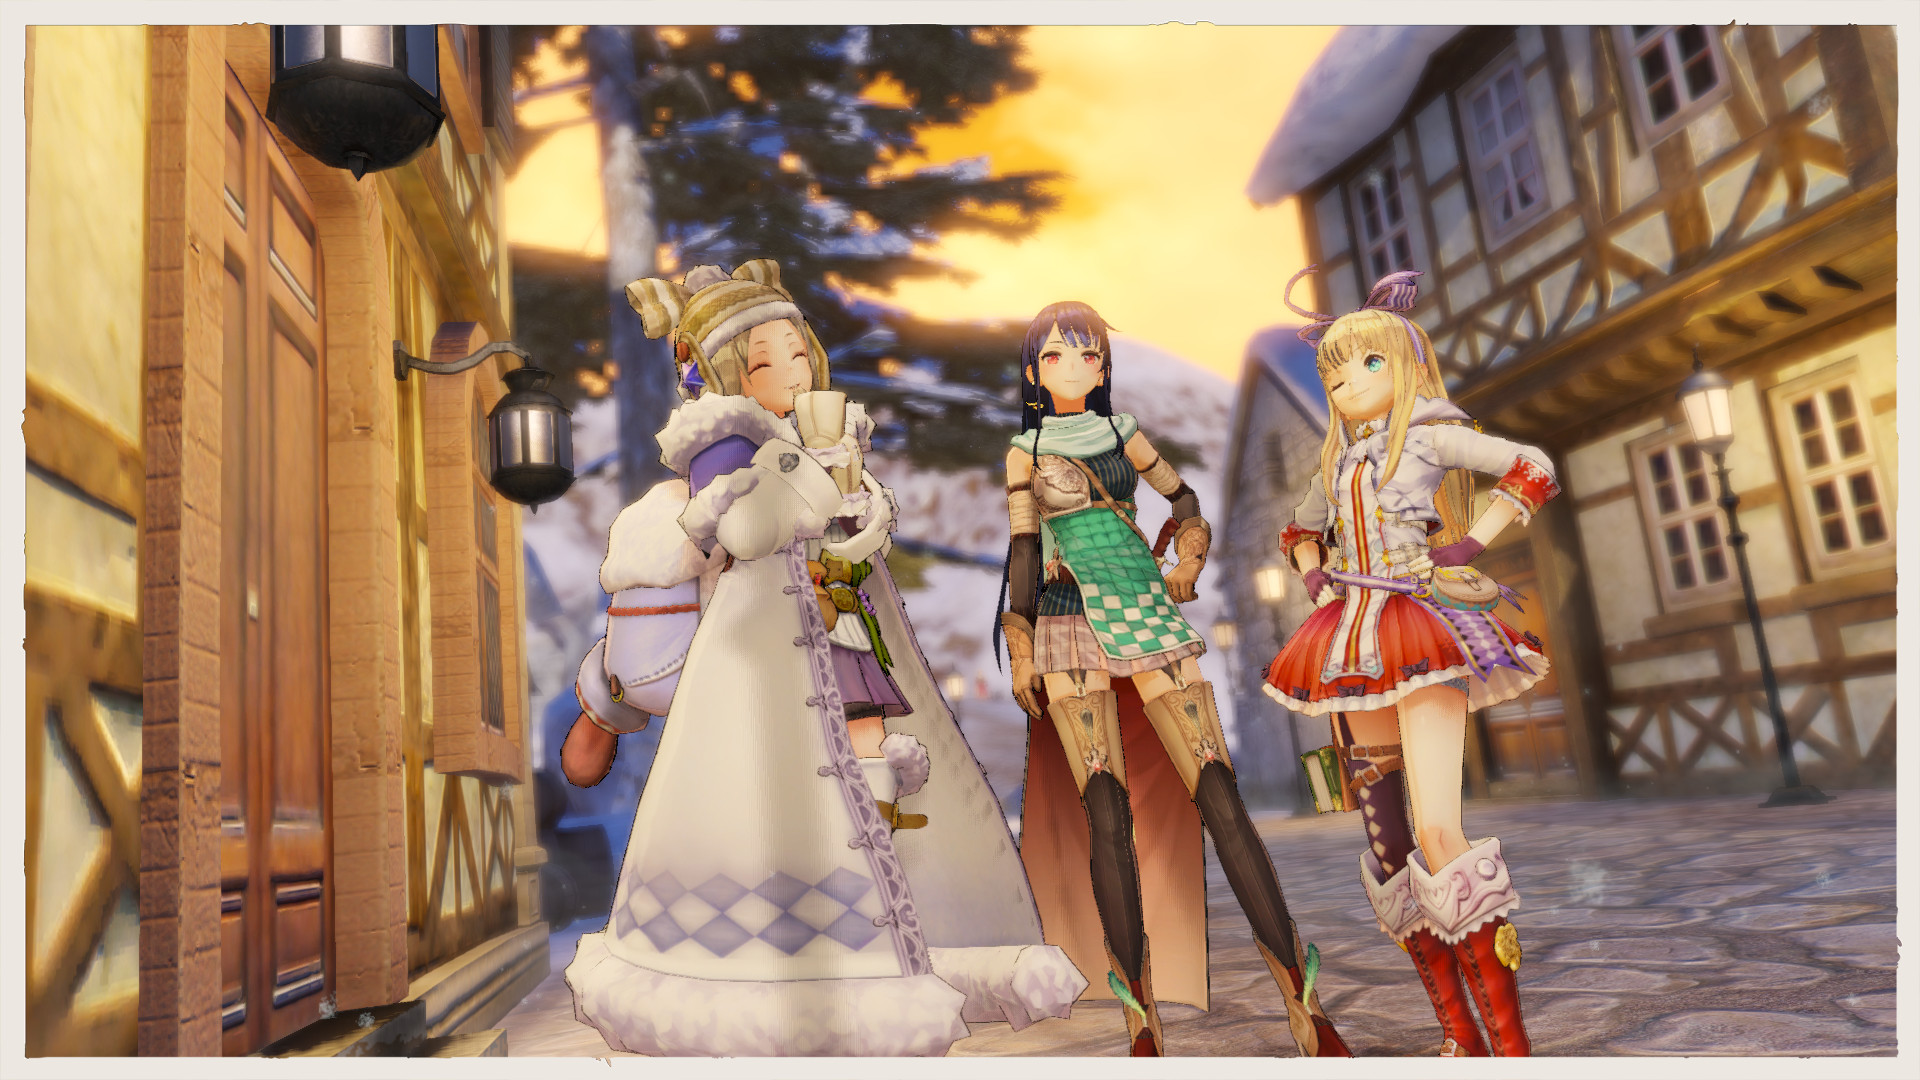 atelier-firis-the-alchemist-and-the-mysterious-journey-dx-pc-screenshot-3